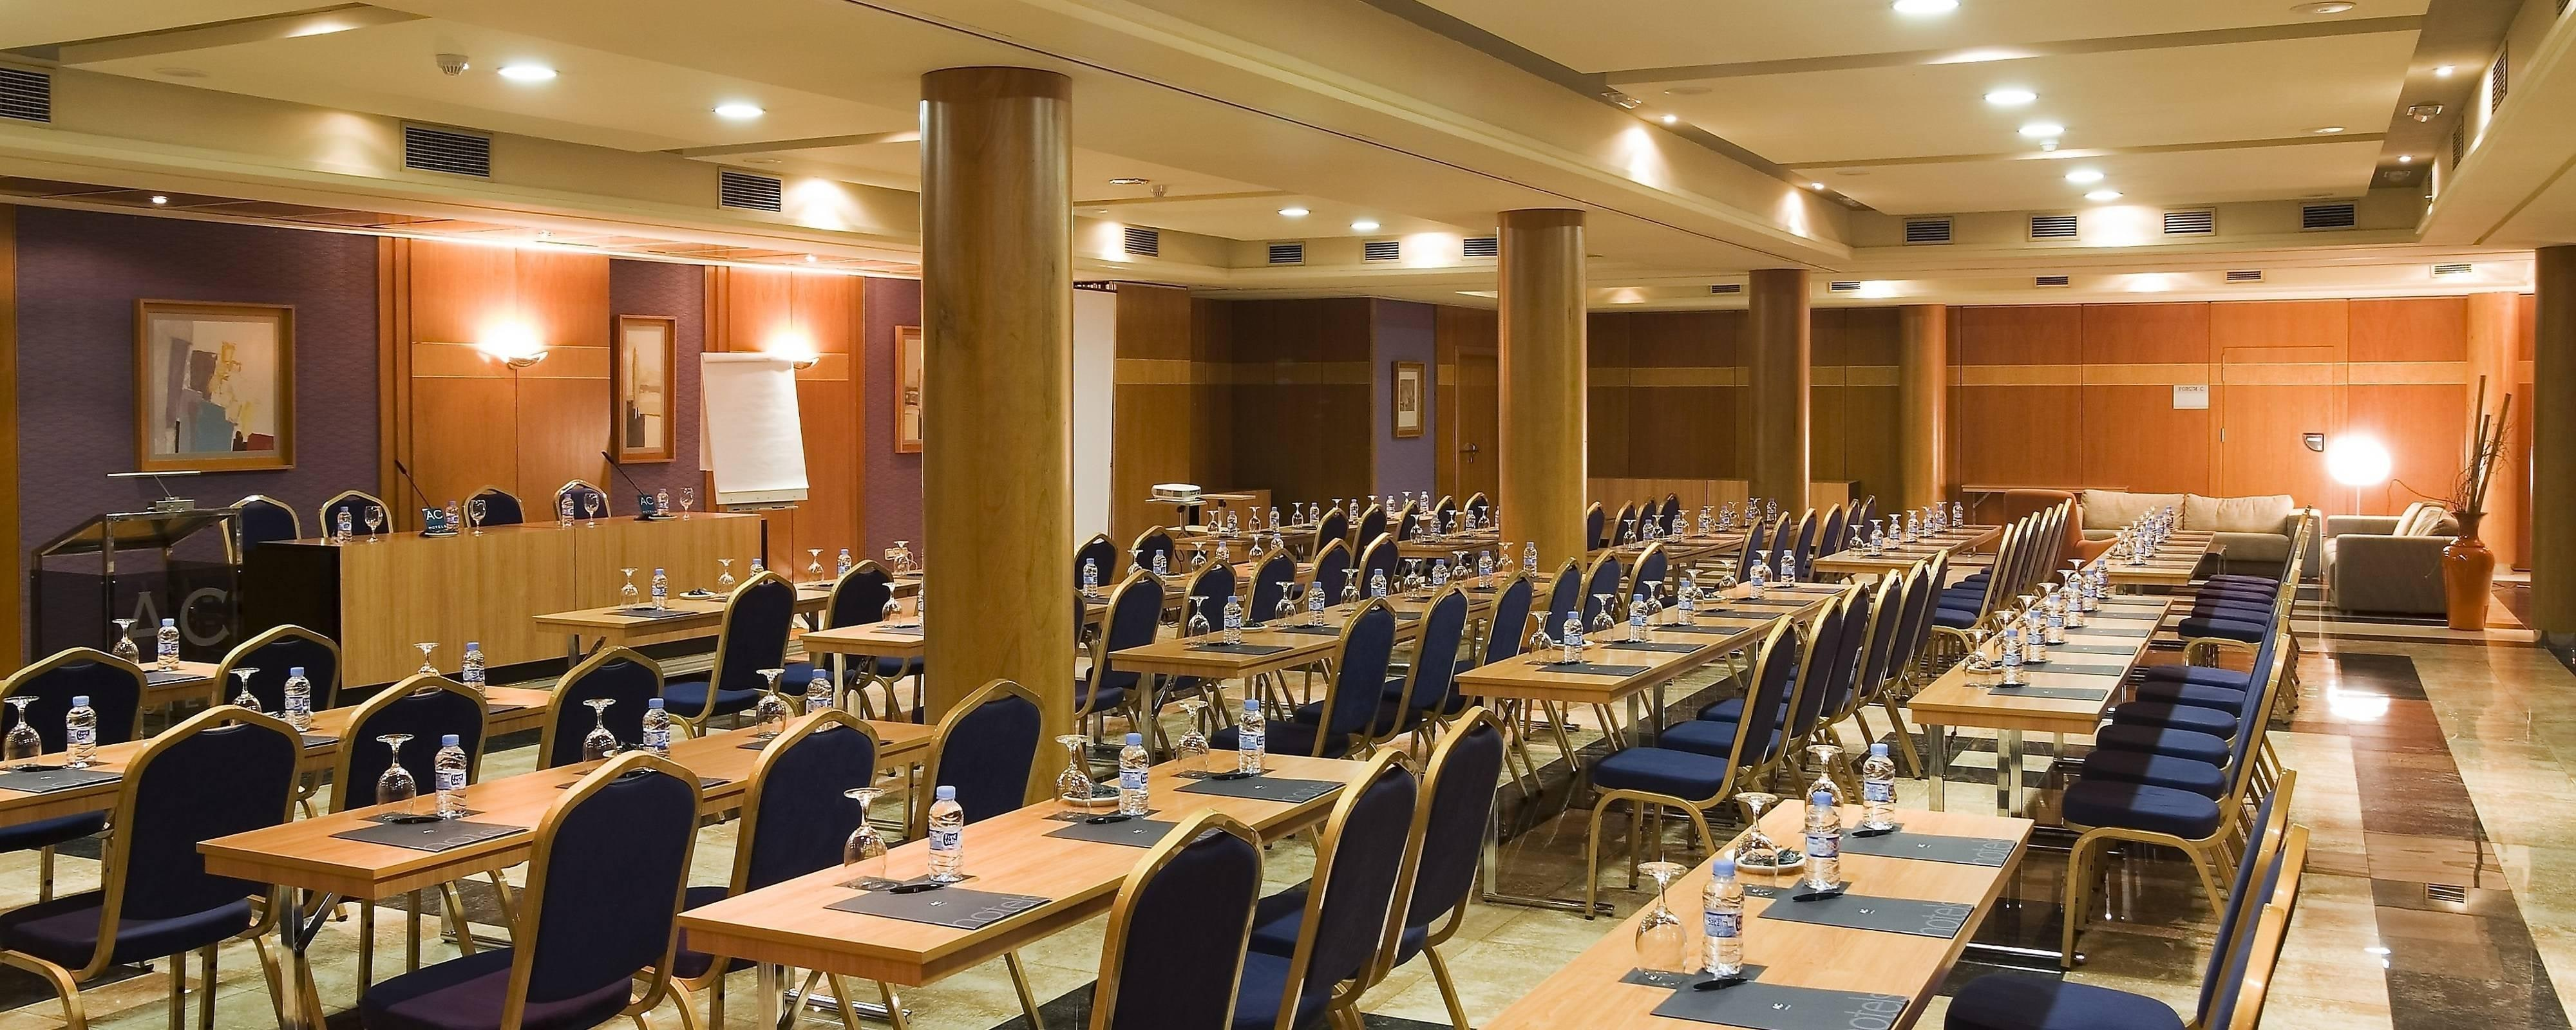 Almeria hotel meeting rooms